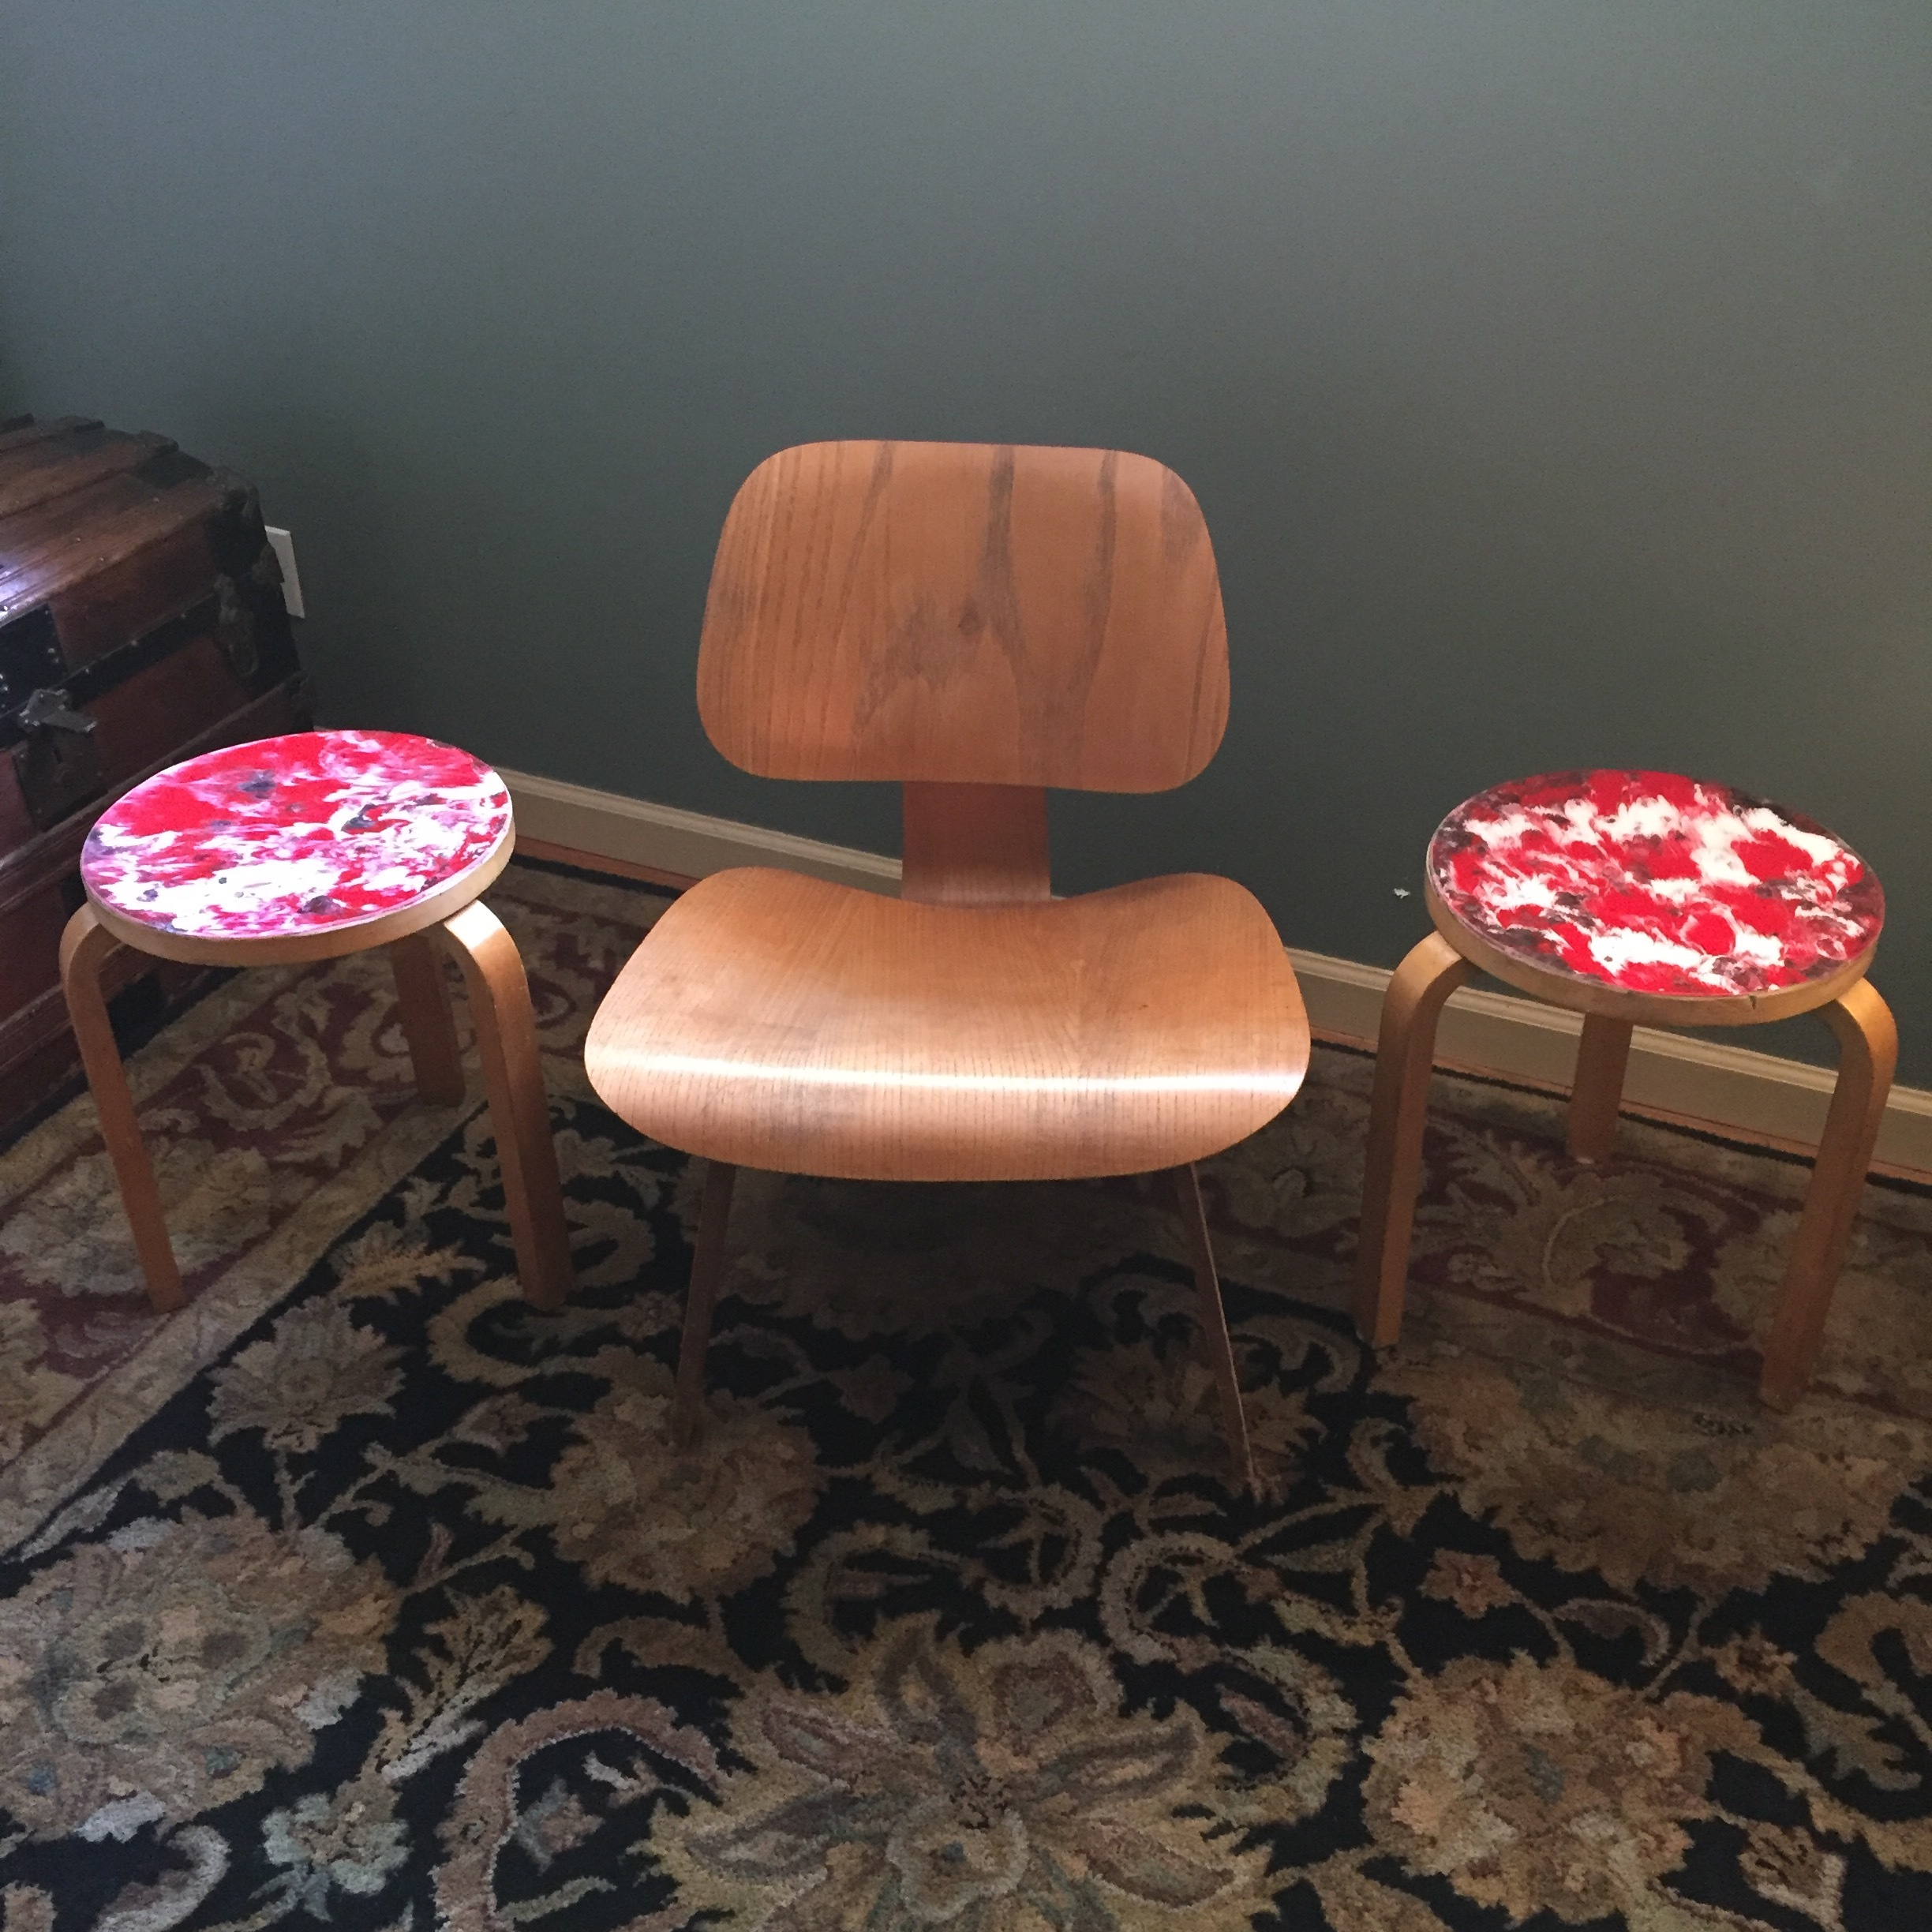 Painted vintage Alvar Aalto stools paired with original Eames LCW